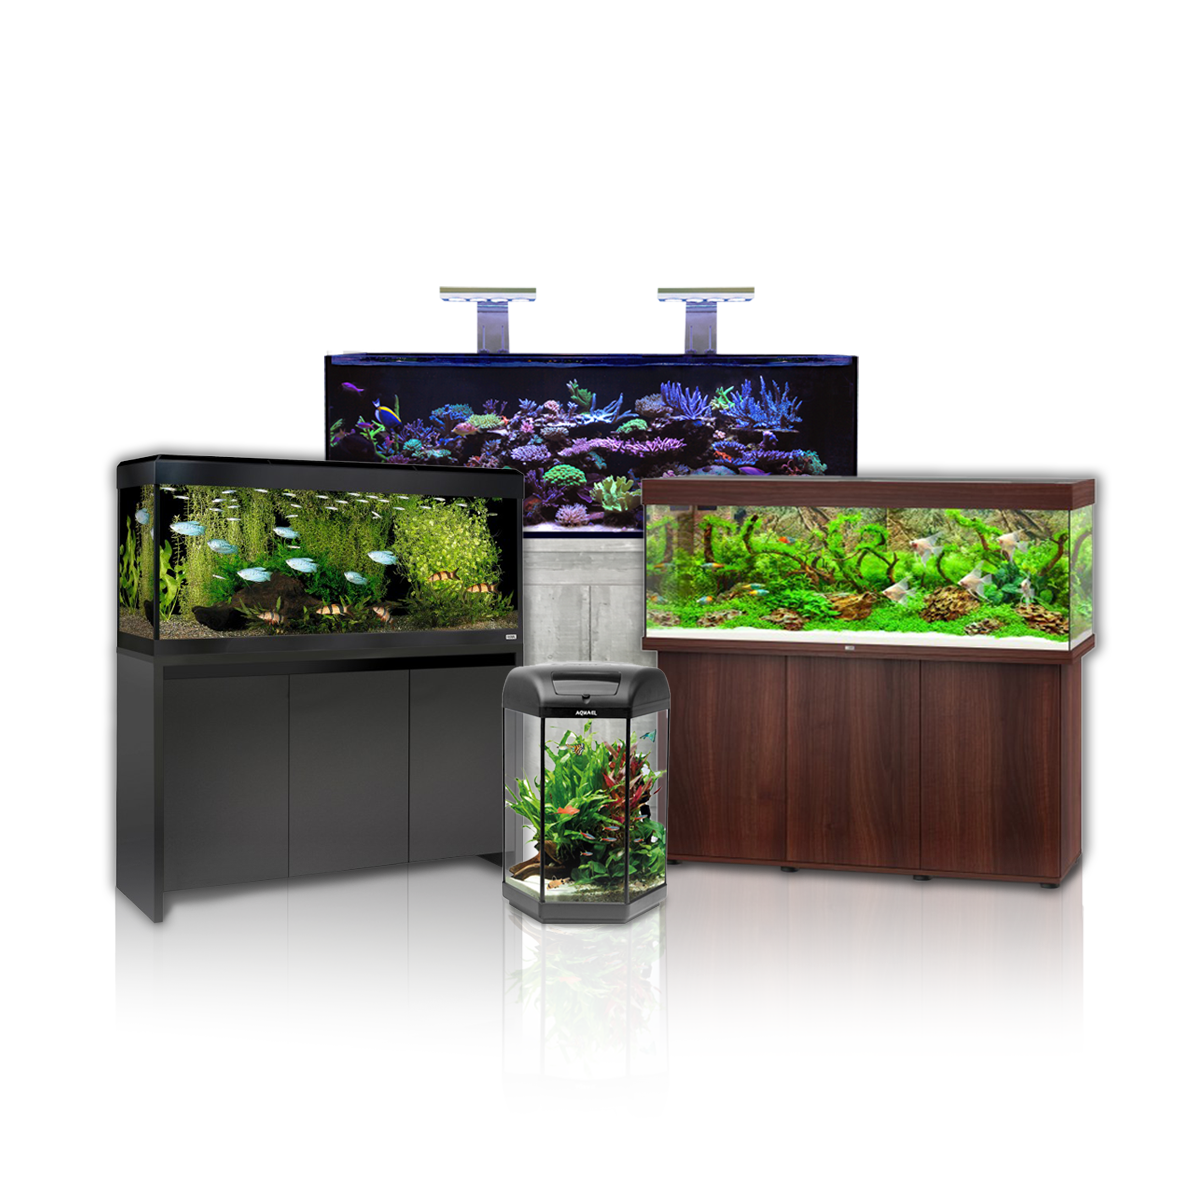 Aquarium Tanks And Cabinets